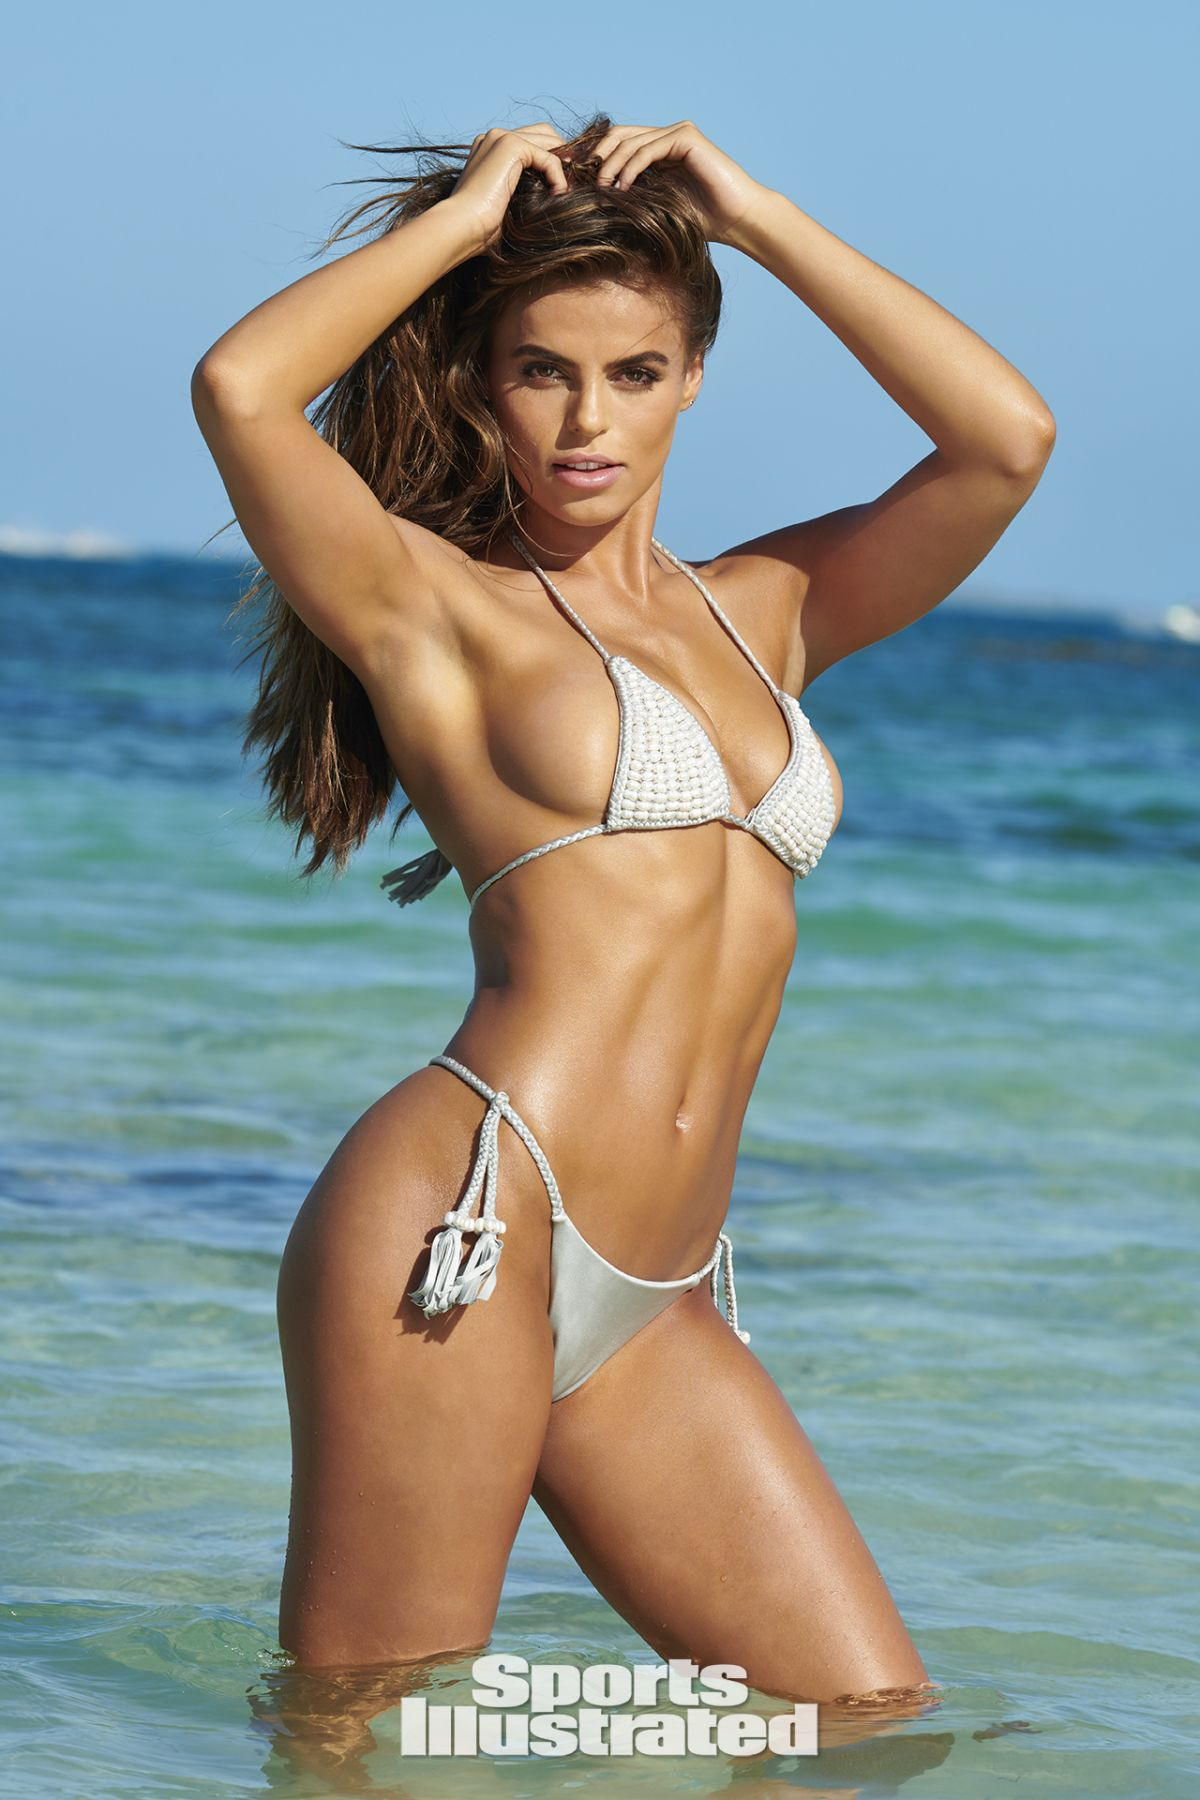 BROOKS NADER in Sports Illustrated Swimsuit 2019 Issue - HawtCelebs